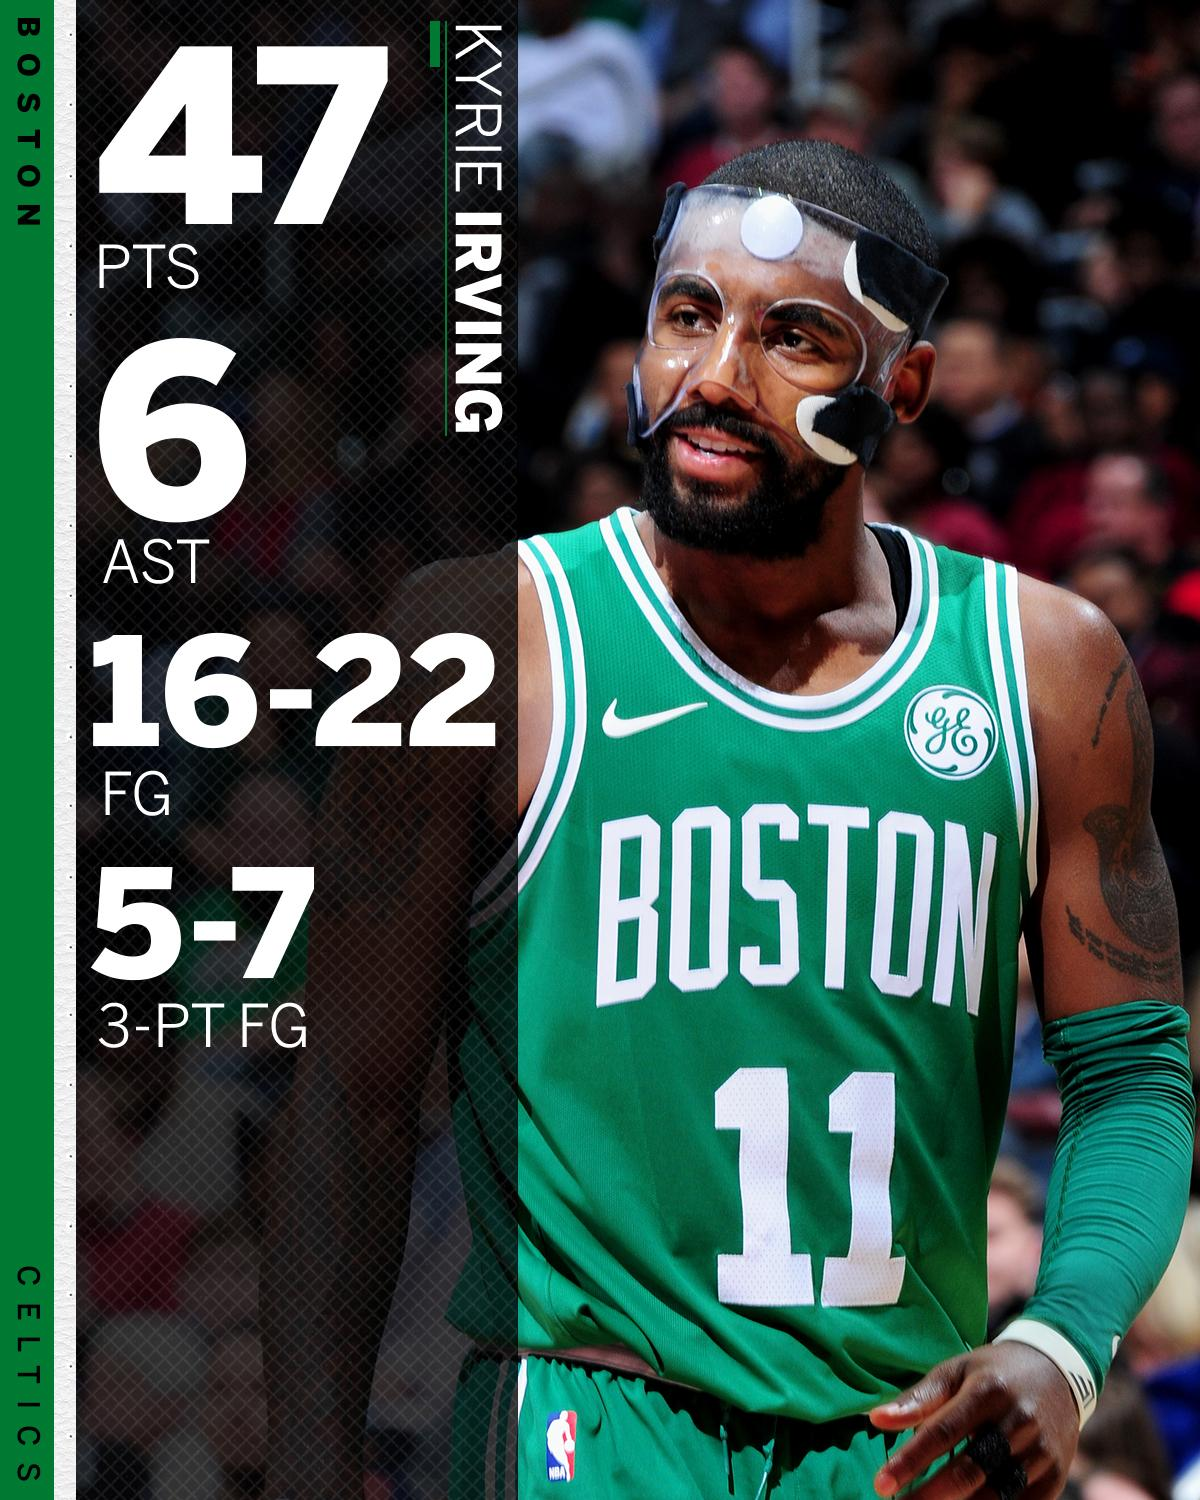 The Celtics needed all 47 to keep the streak alive. ☘️ https://t.co/ycFL70AVDb